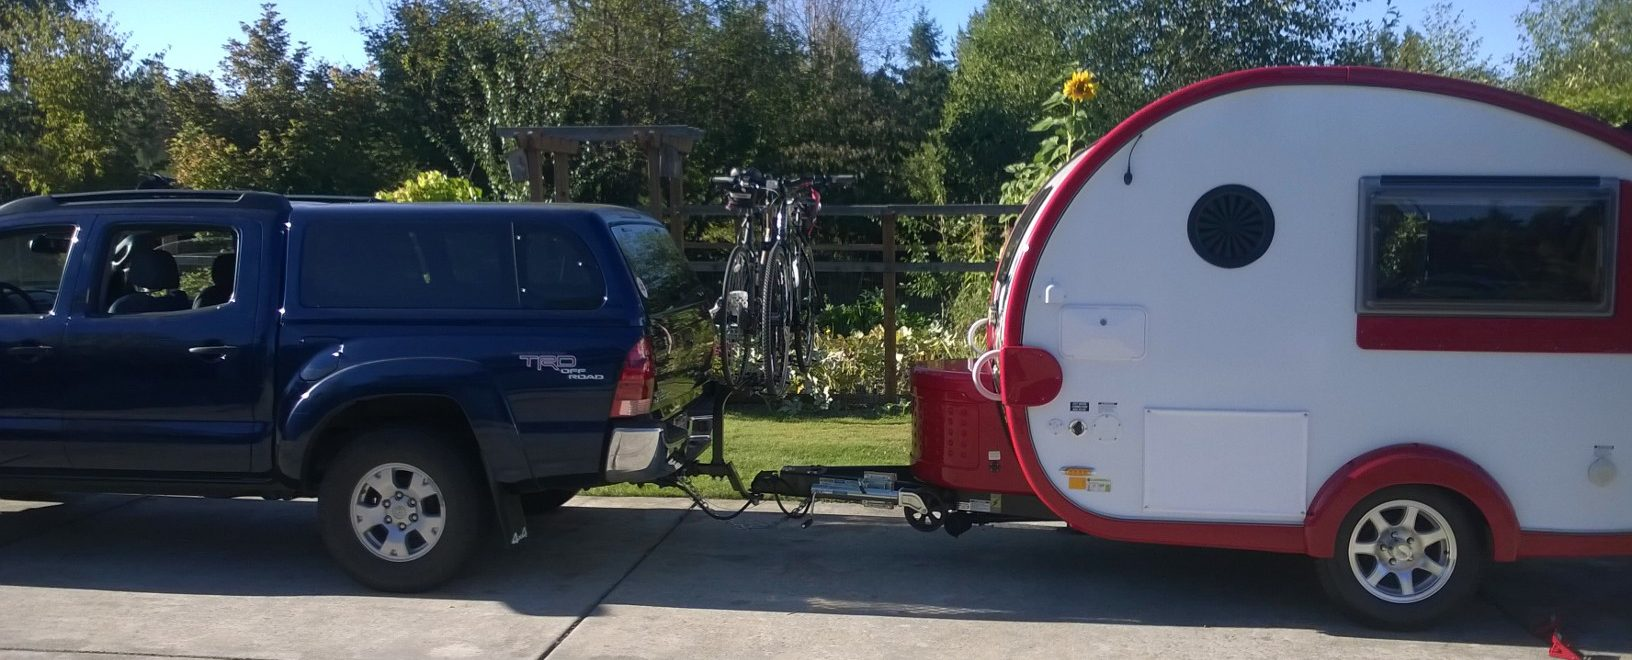 find a great rv bike rack and hit the